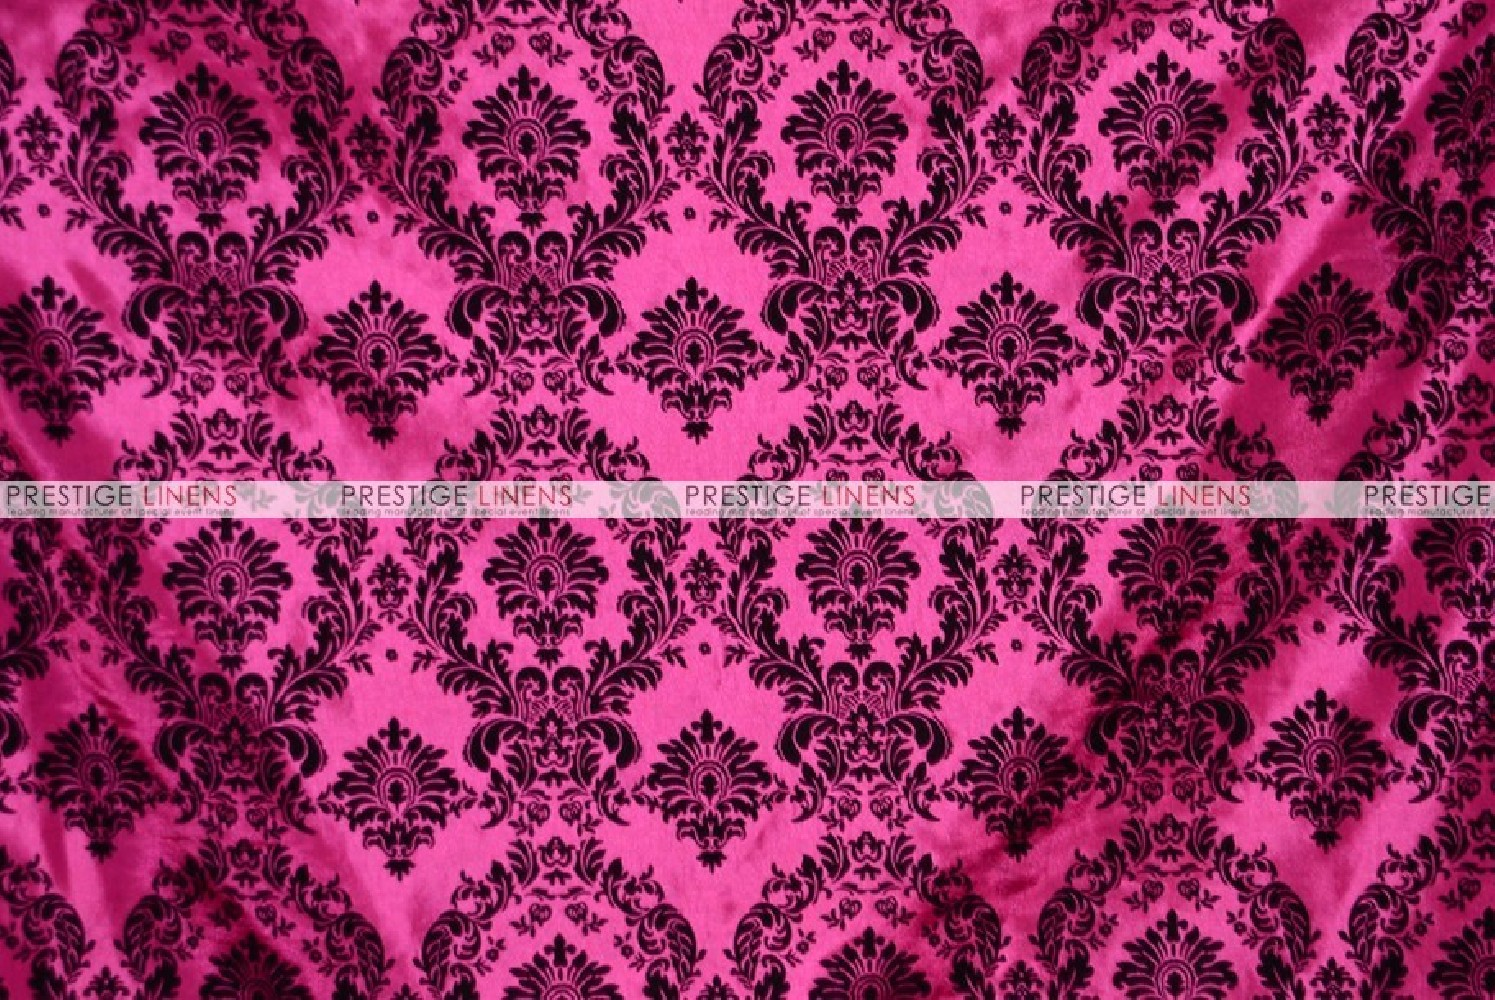 Flocking Damask Taffeta Chair Cover Hot Pink Black